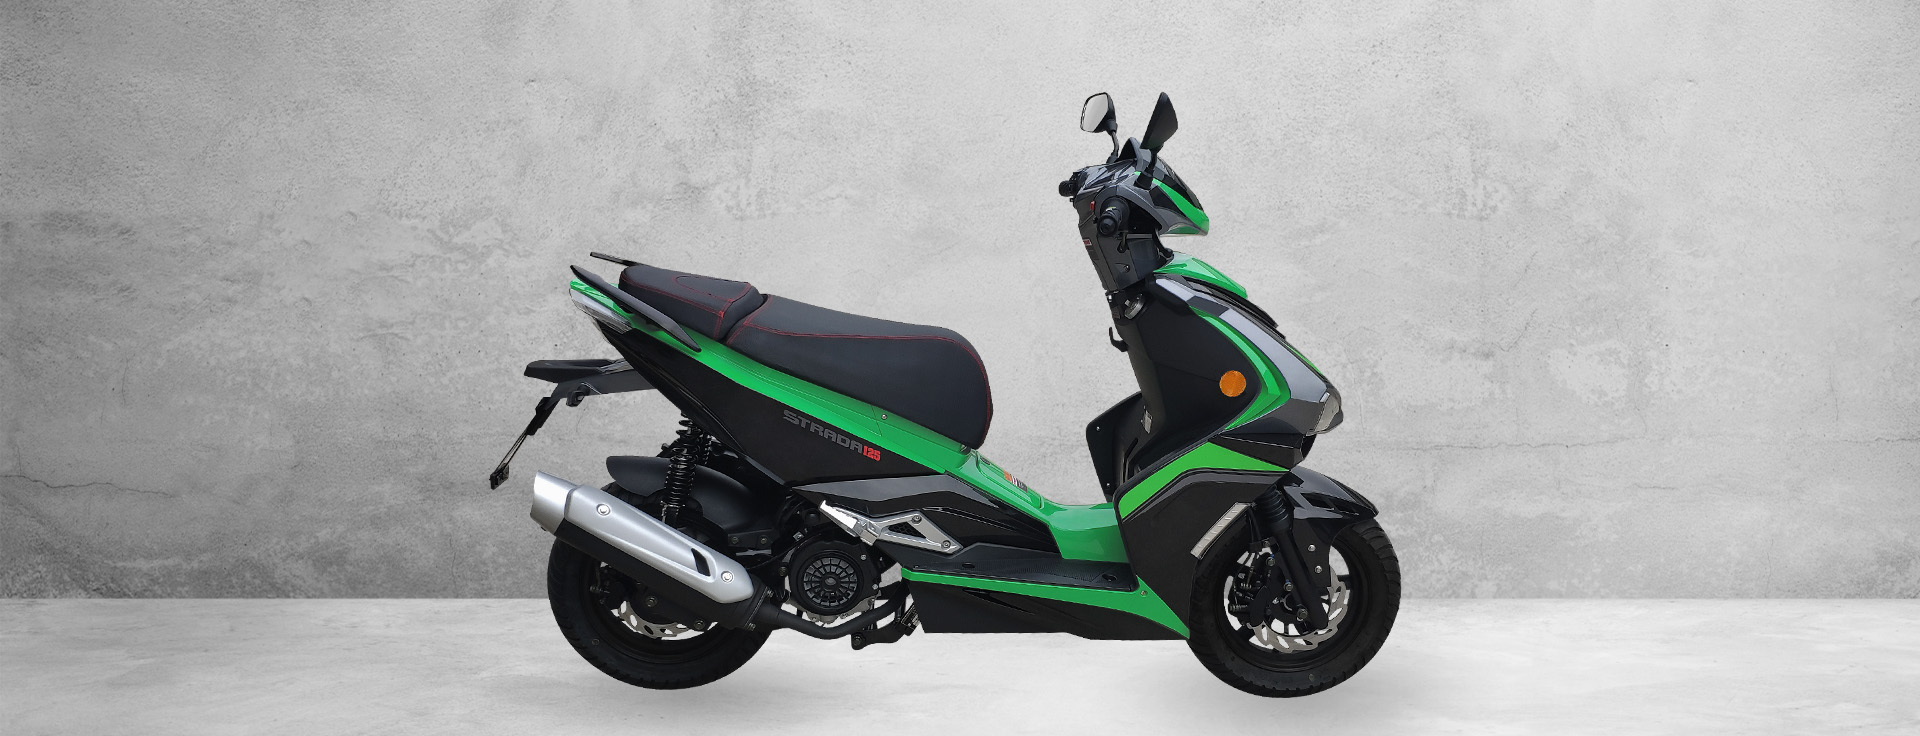 Nouveau scooter d'essence